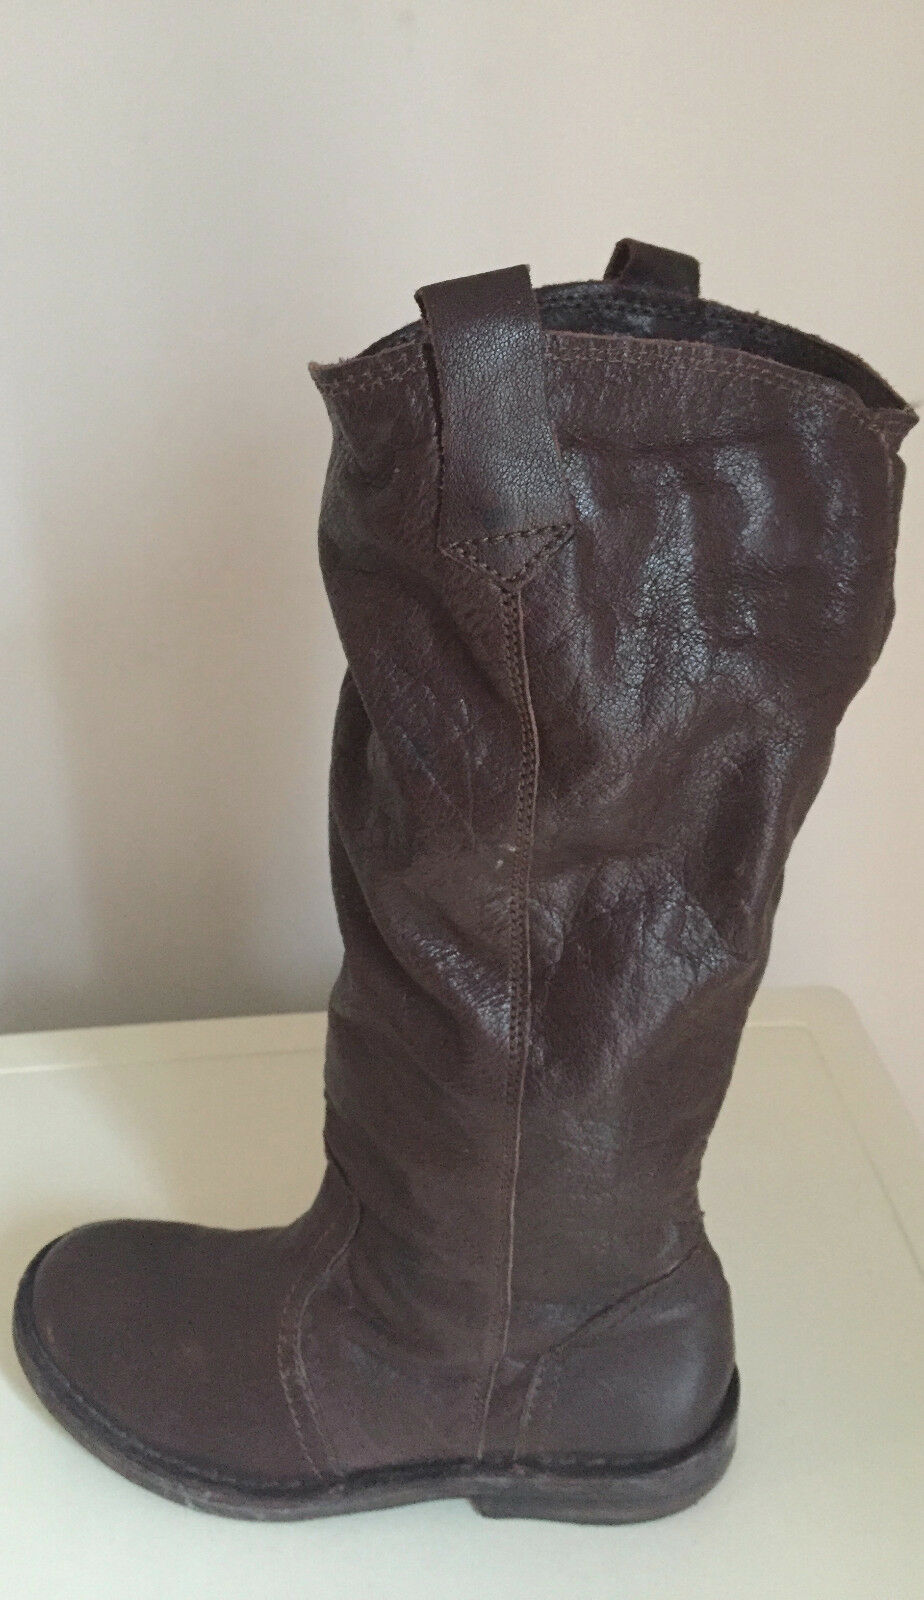 TOPSHOP LADIES LEATHER KNEE HIGH BOOTS WITH KNITTED SOCK EFFECT SIZE 37